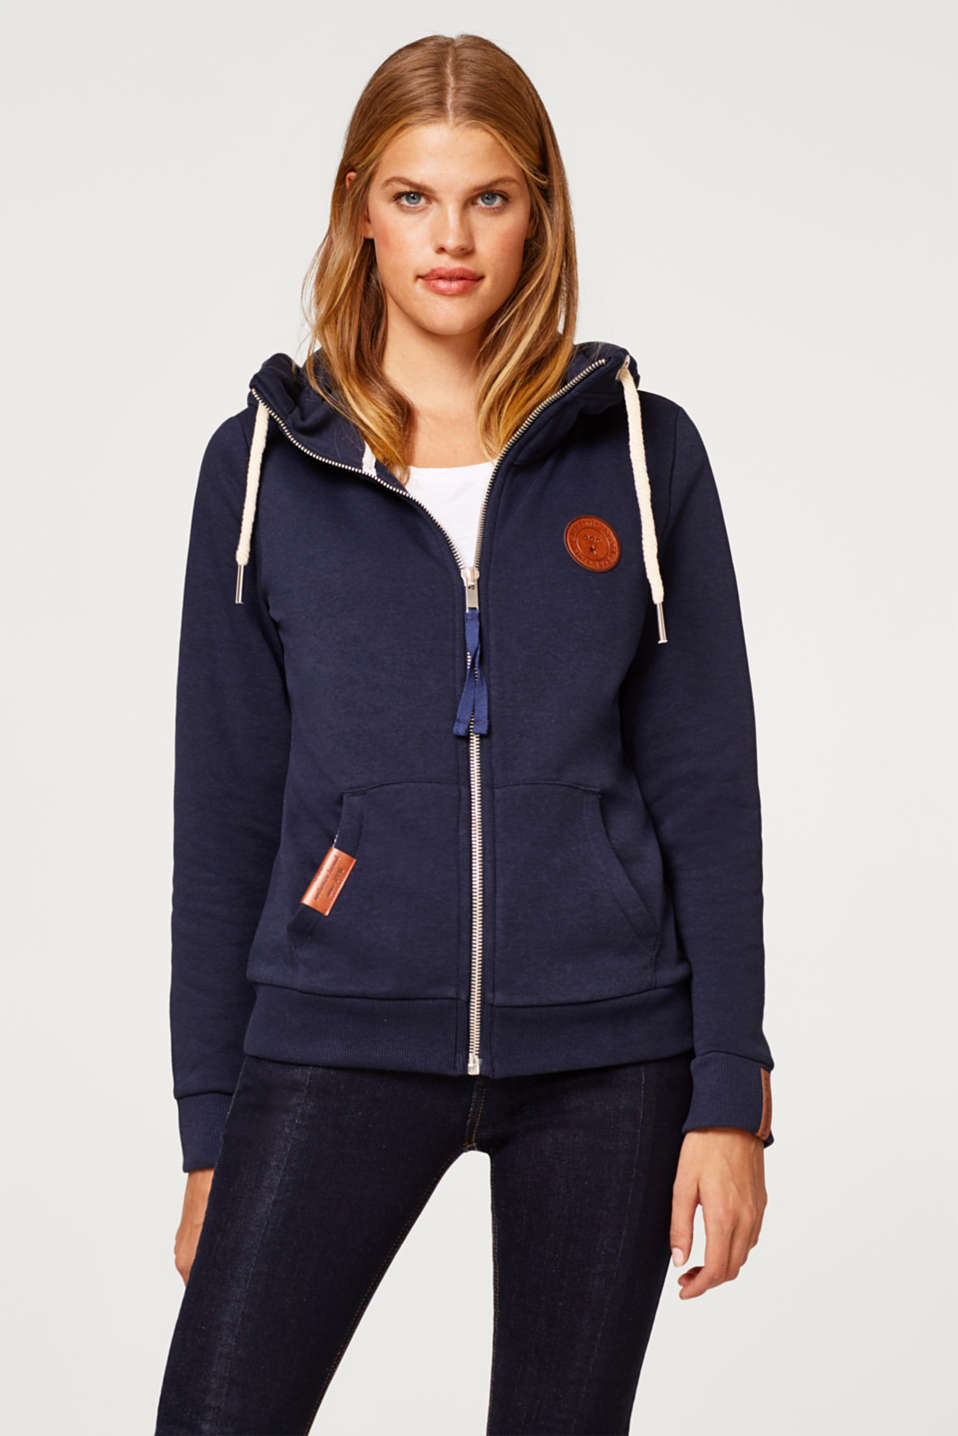 edc - Sweatshirt cardigan with a hood and contrasting cords